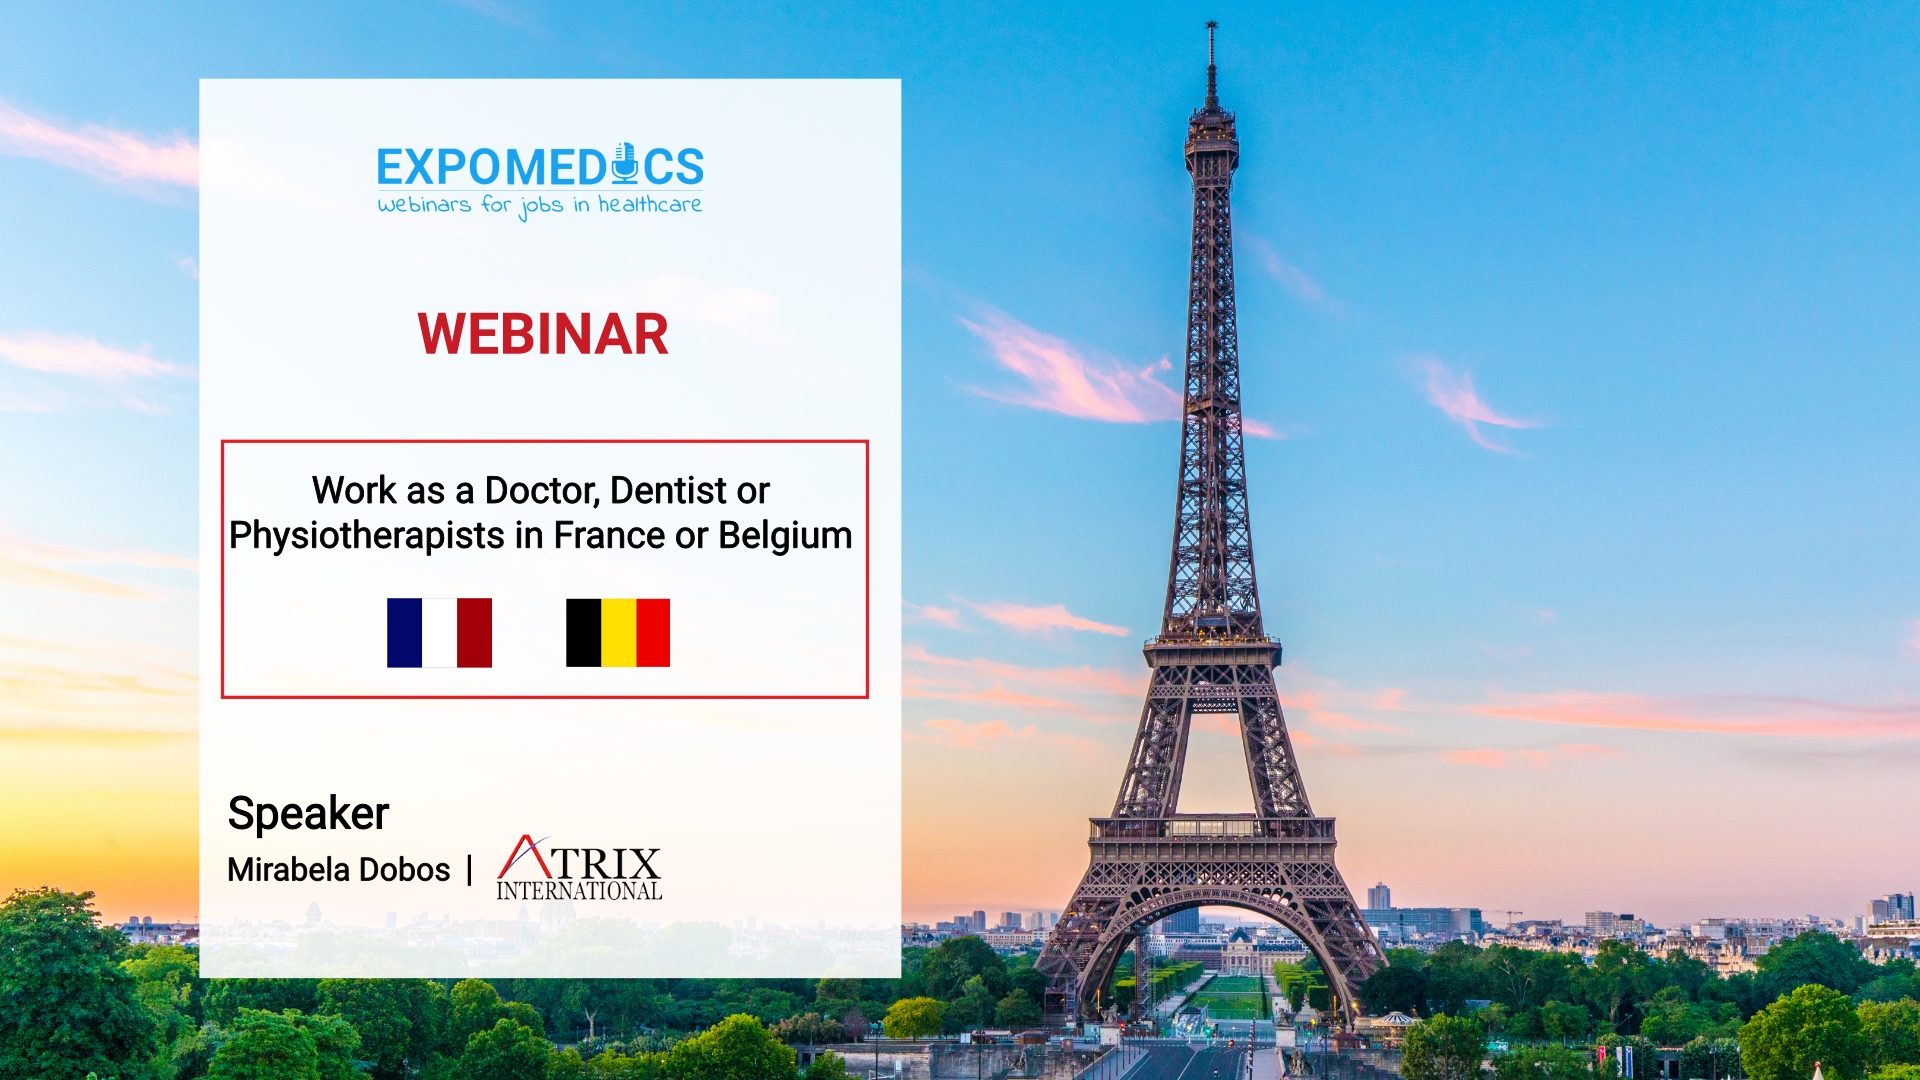 Carrer opportunities for Doctors, Dentists & Physiotherapists in France and Belgium